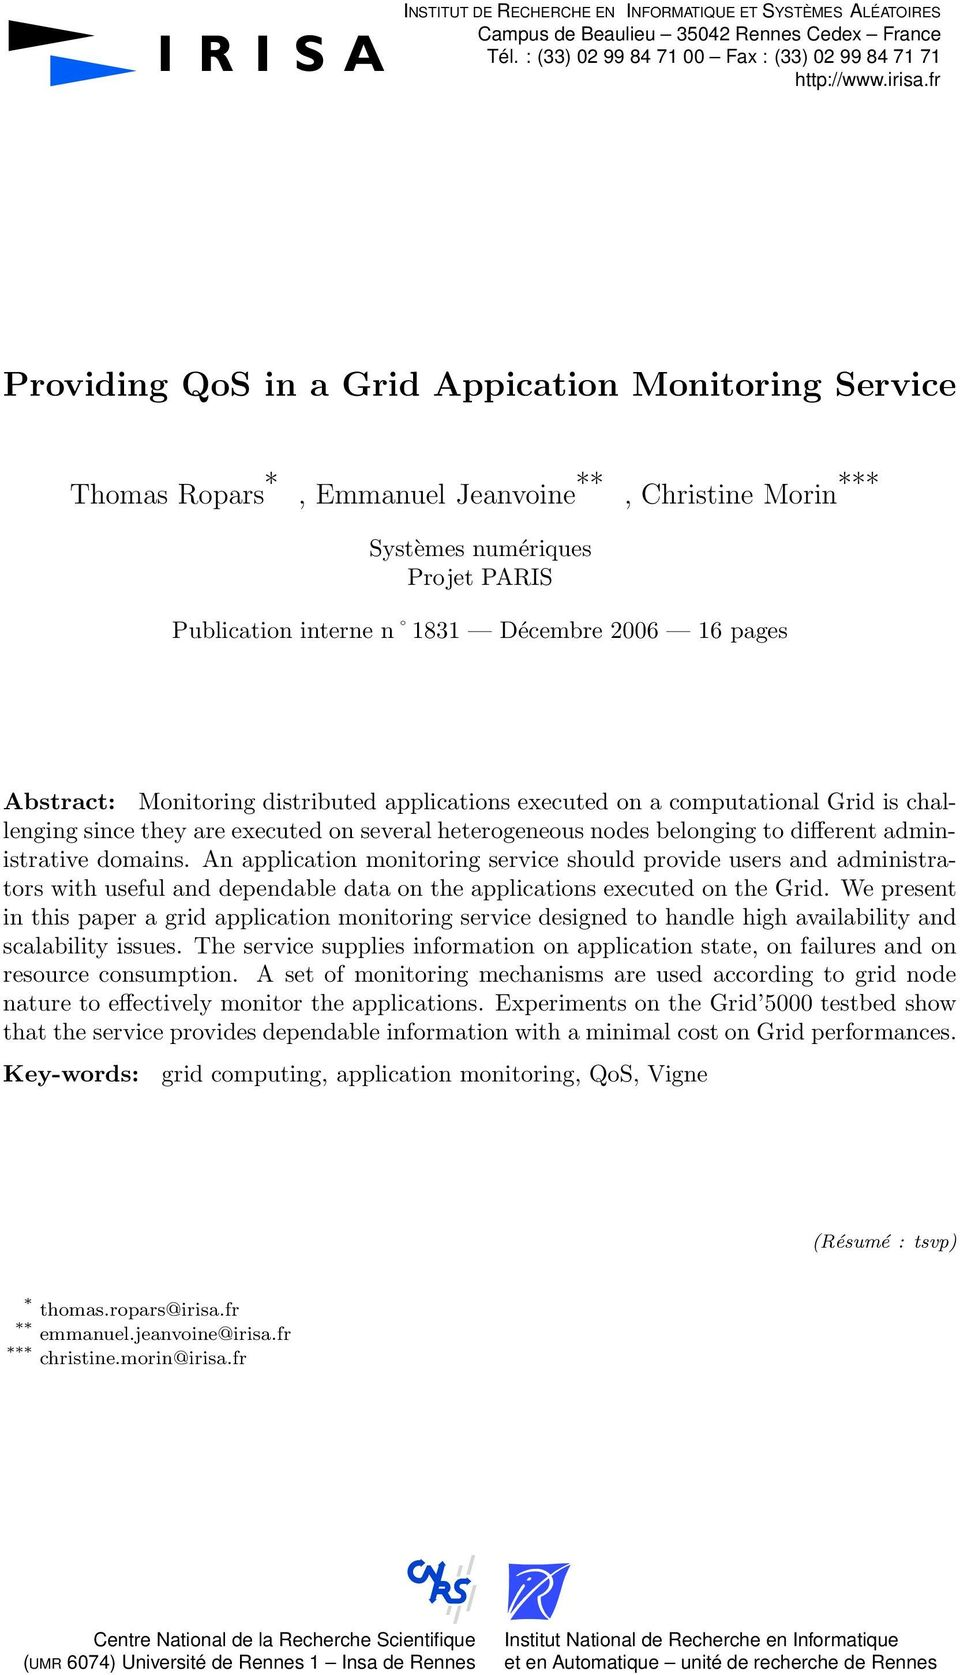 Abstract: Monitoring distributed applications executed on a computational Grid is challenging since they are executed on several heterogeneous nodes belonging to different administrative domains.